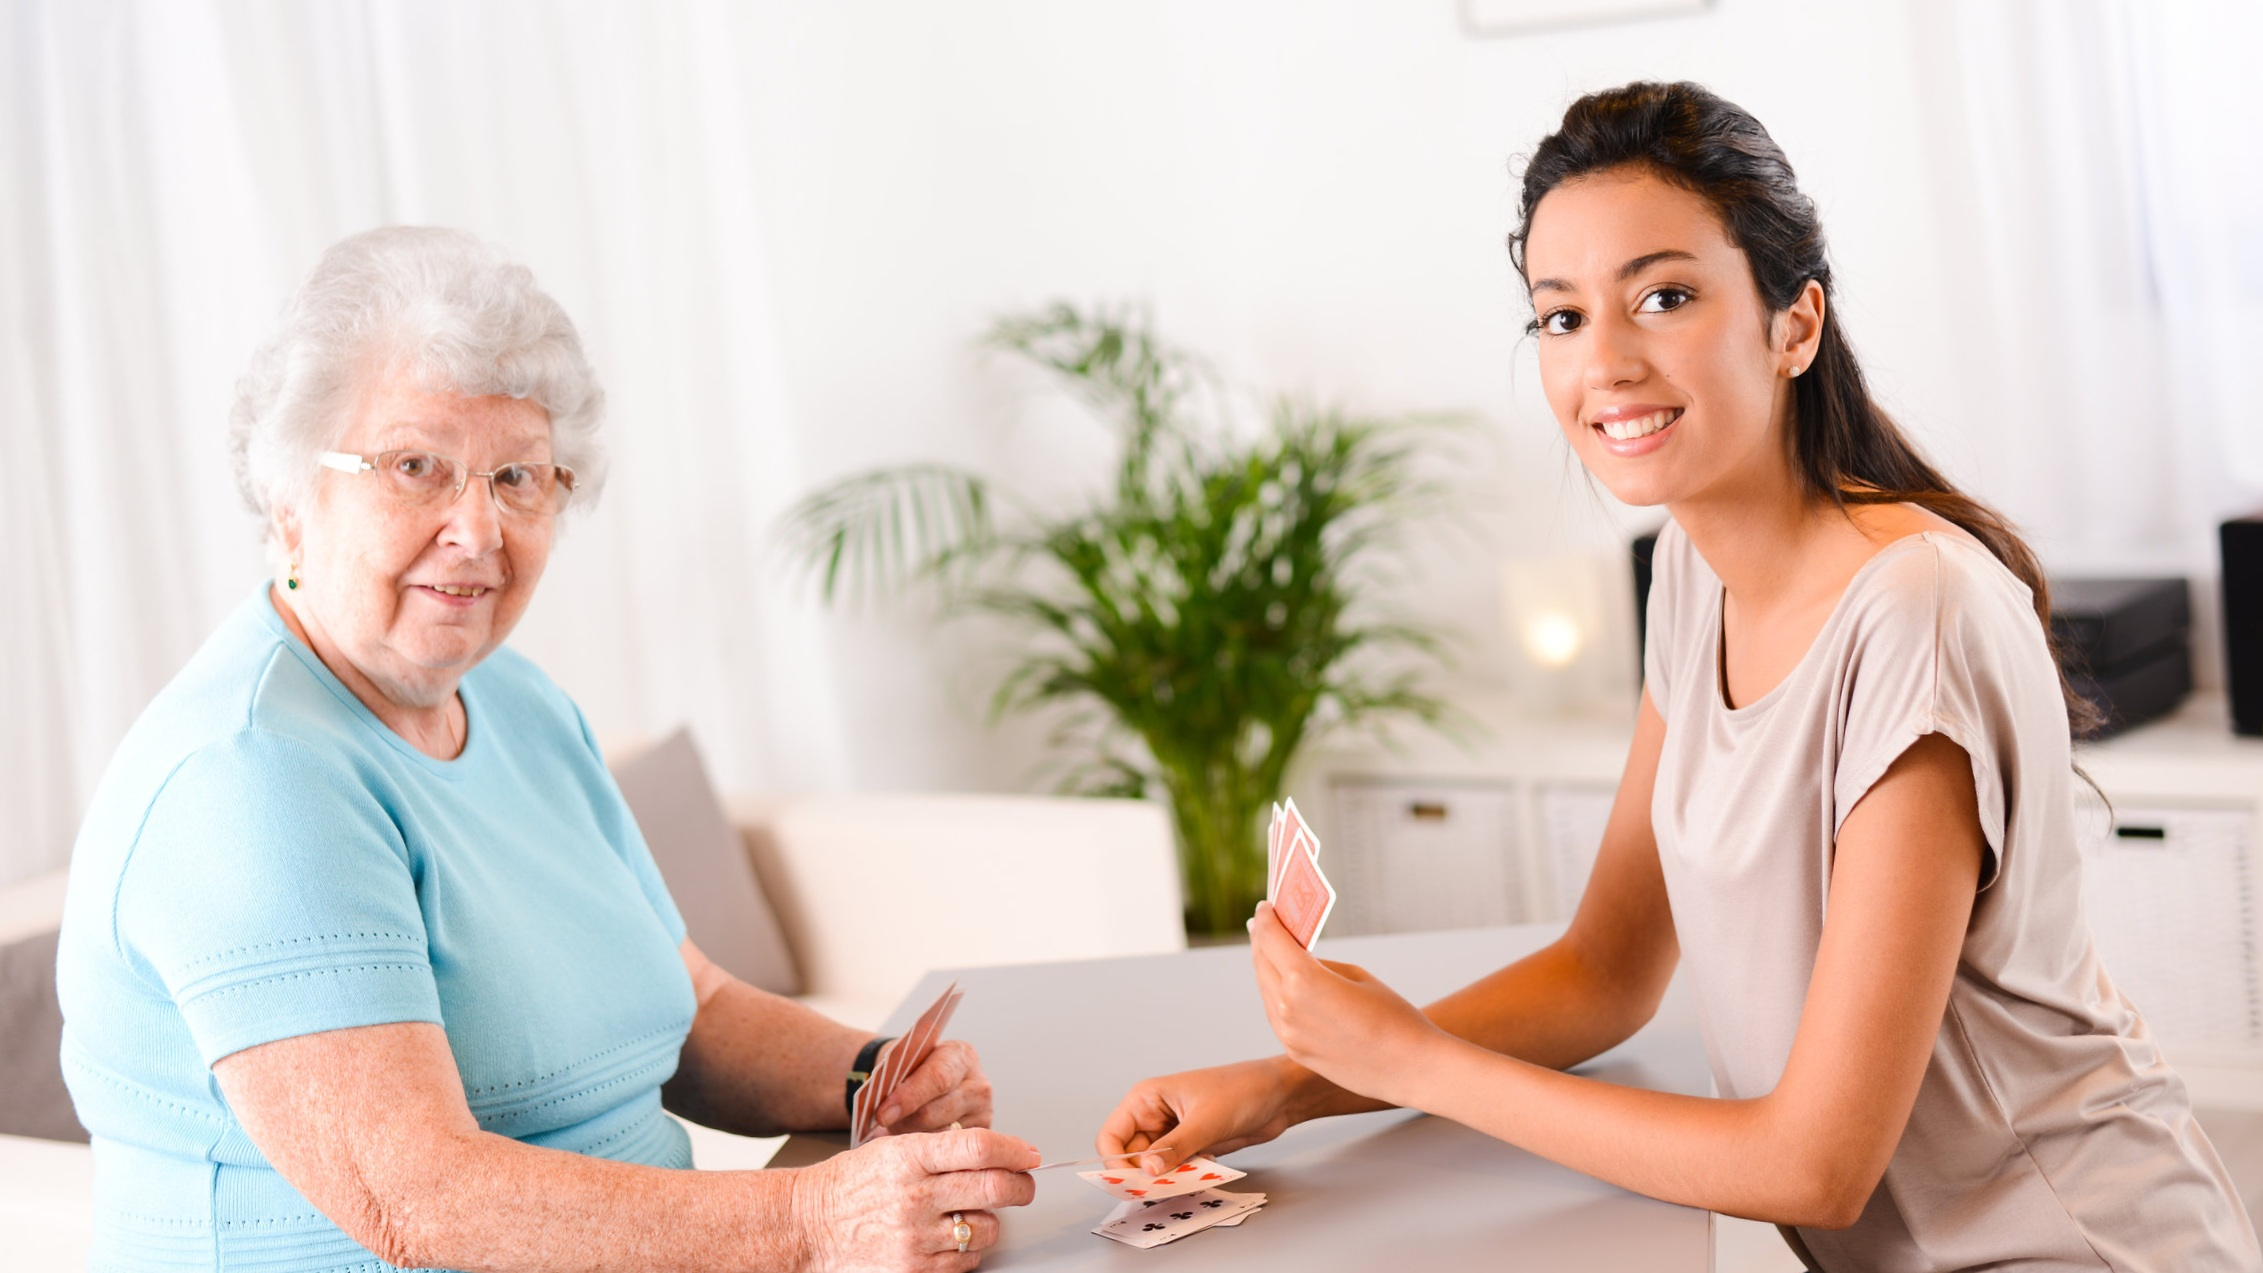 Companion Care - We can help be that friendly face to your loved one when companionship and that little extra help is needed.